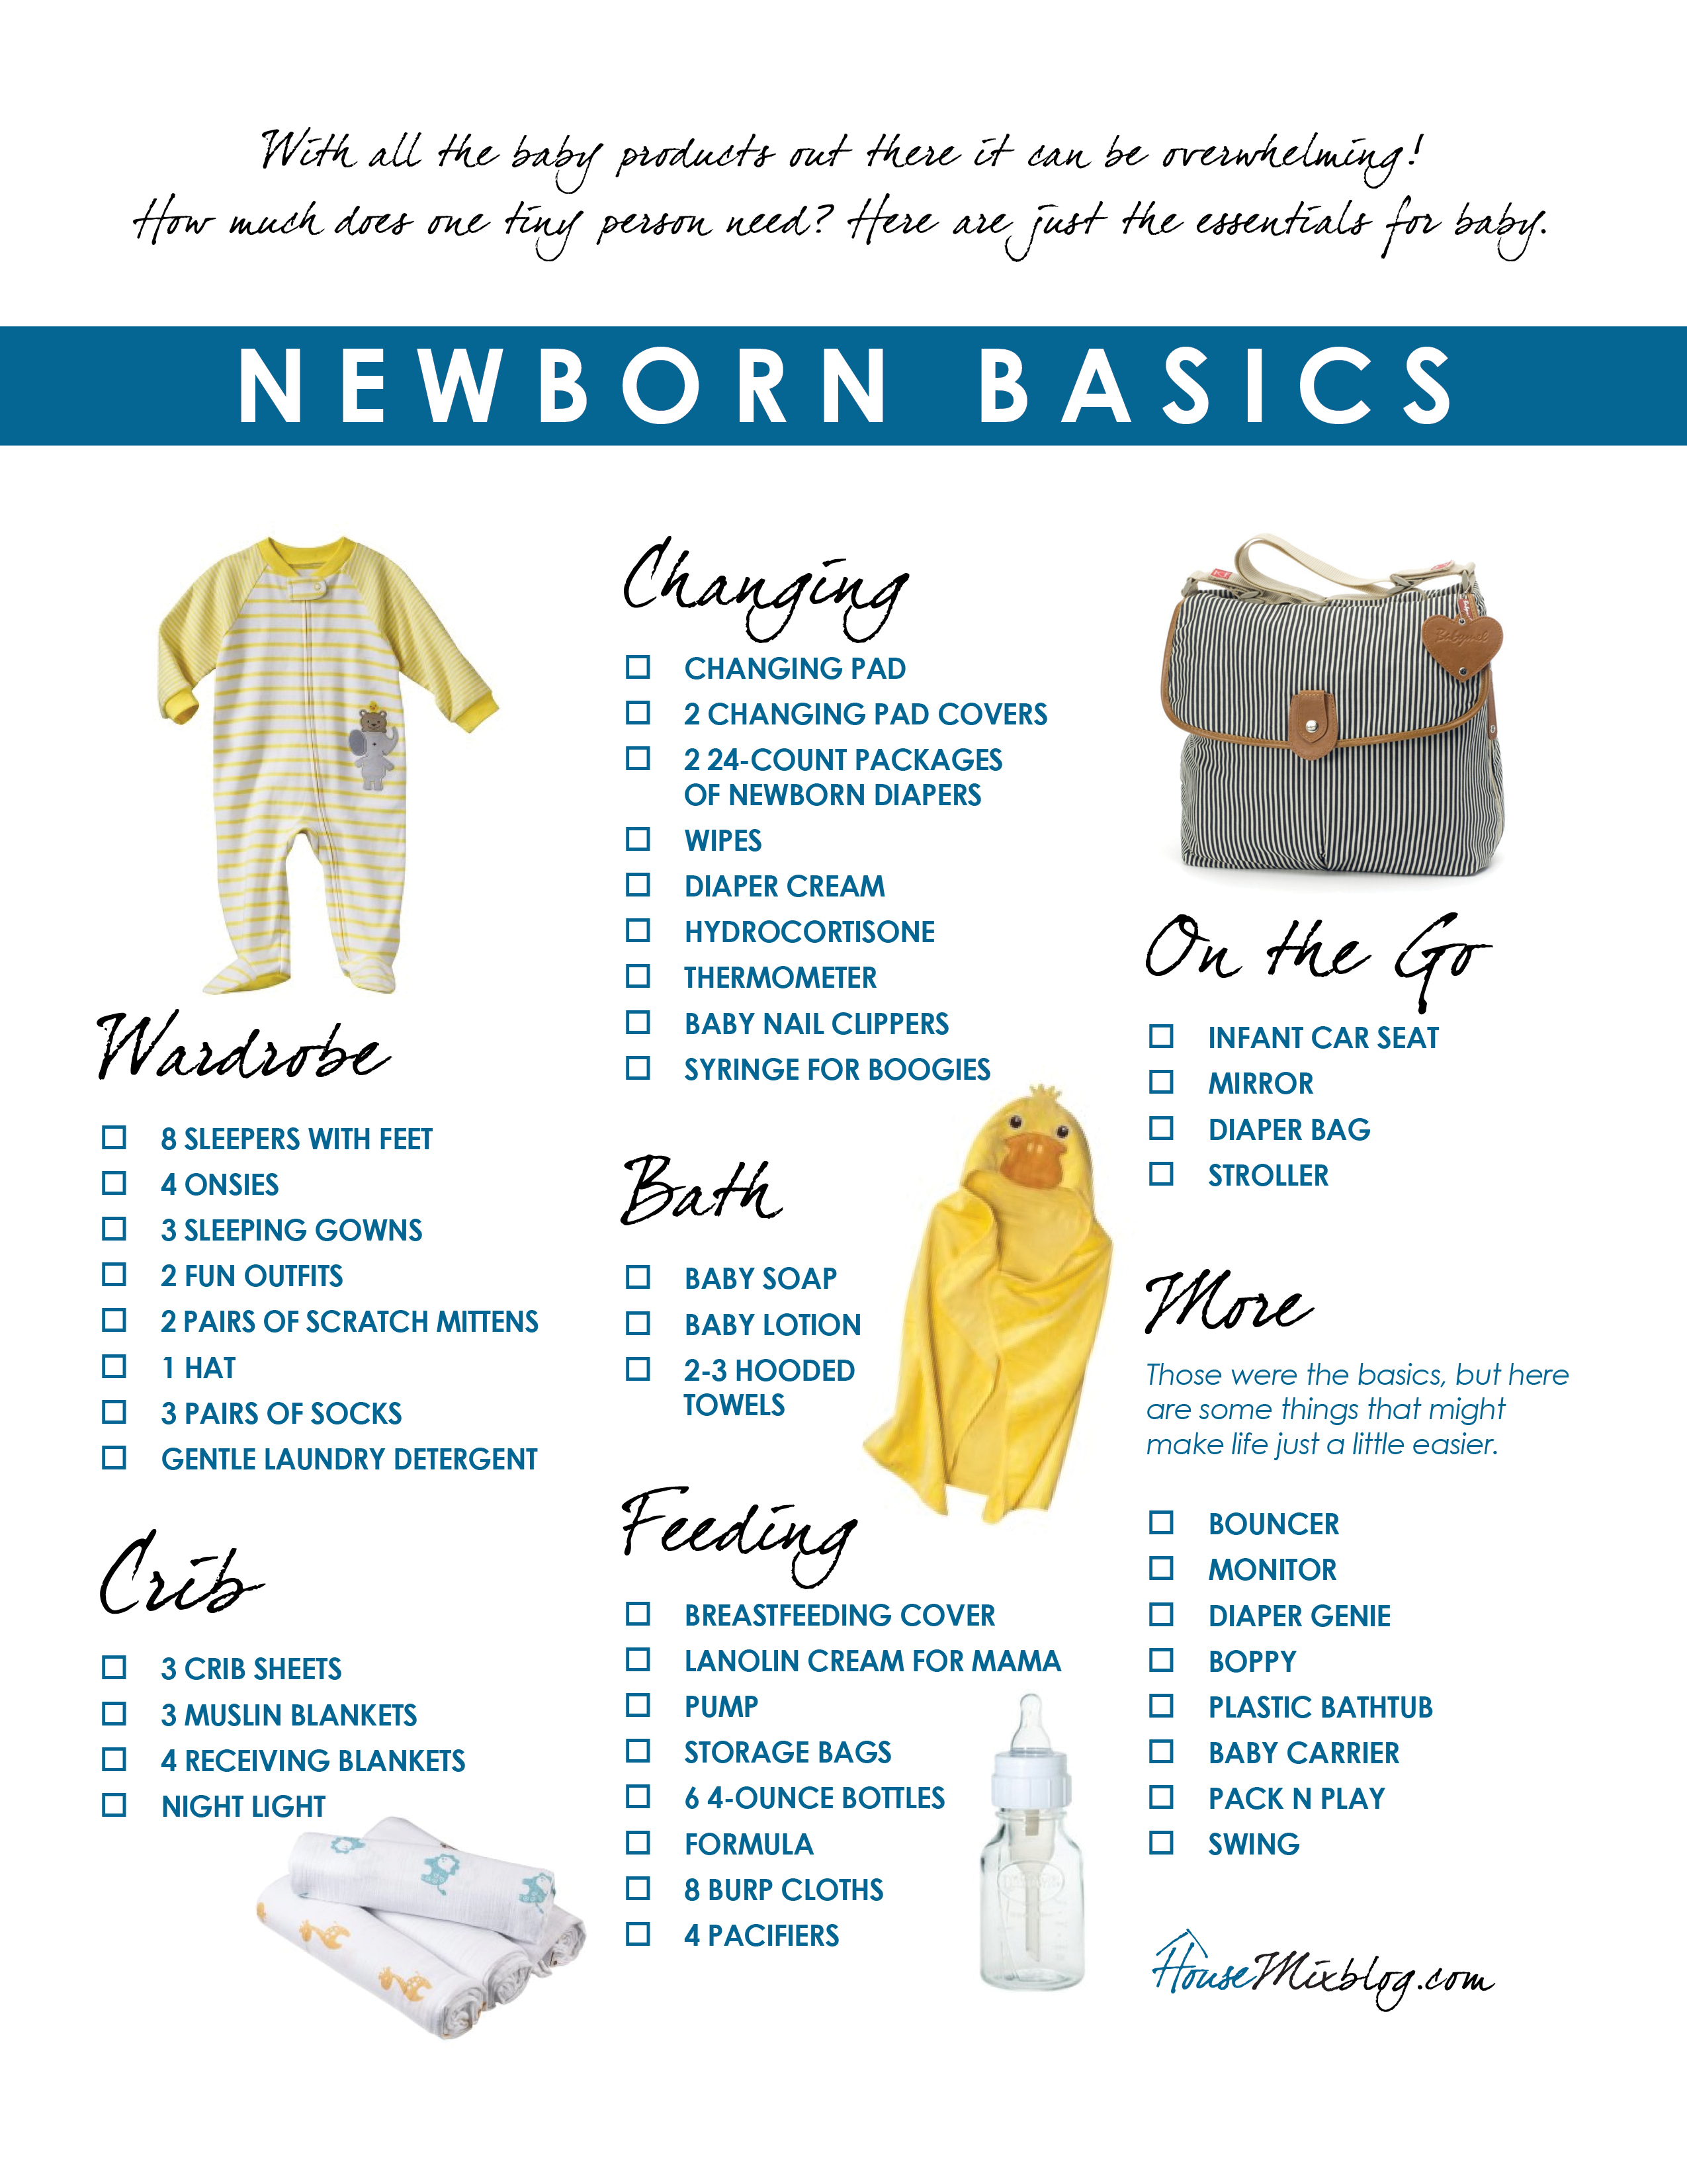 Newborn basics registry checklist | House Mix